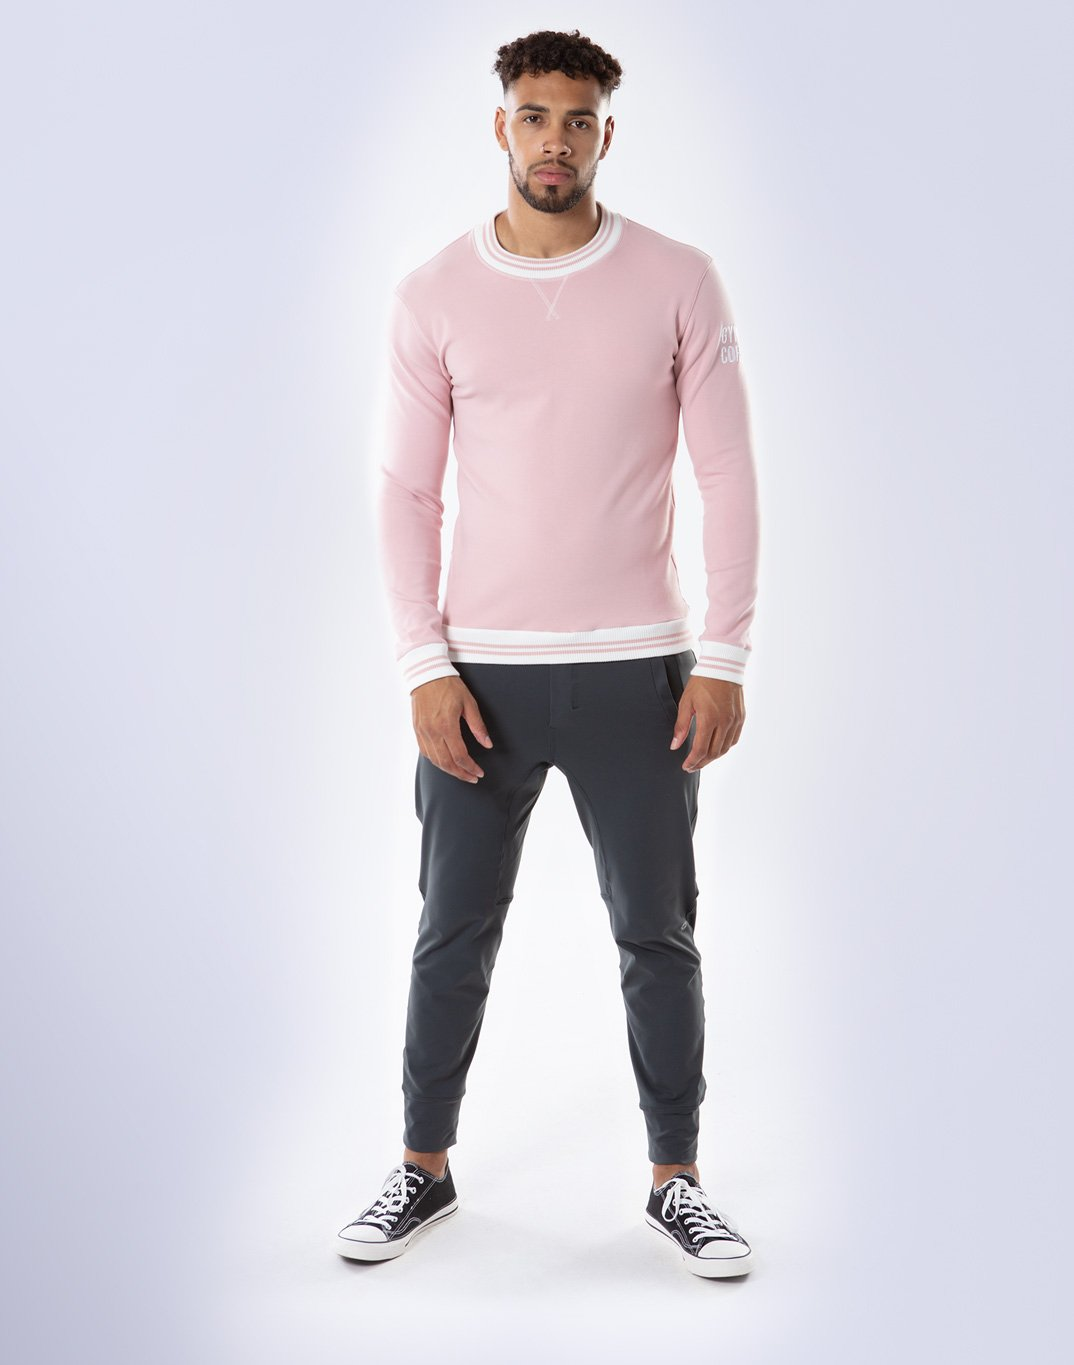 Gym Plus Coffee Long Sleeve Retro UniCrew in Dusty Pink Designed in Ireland